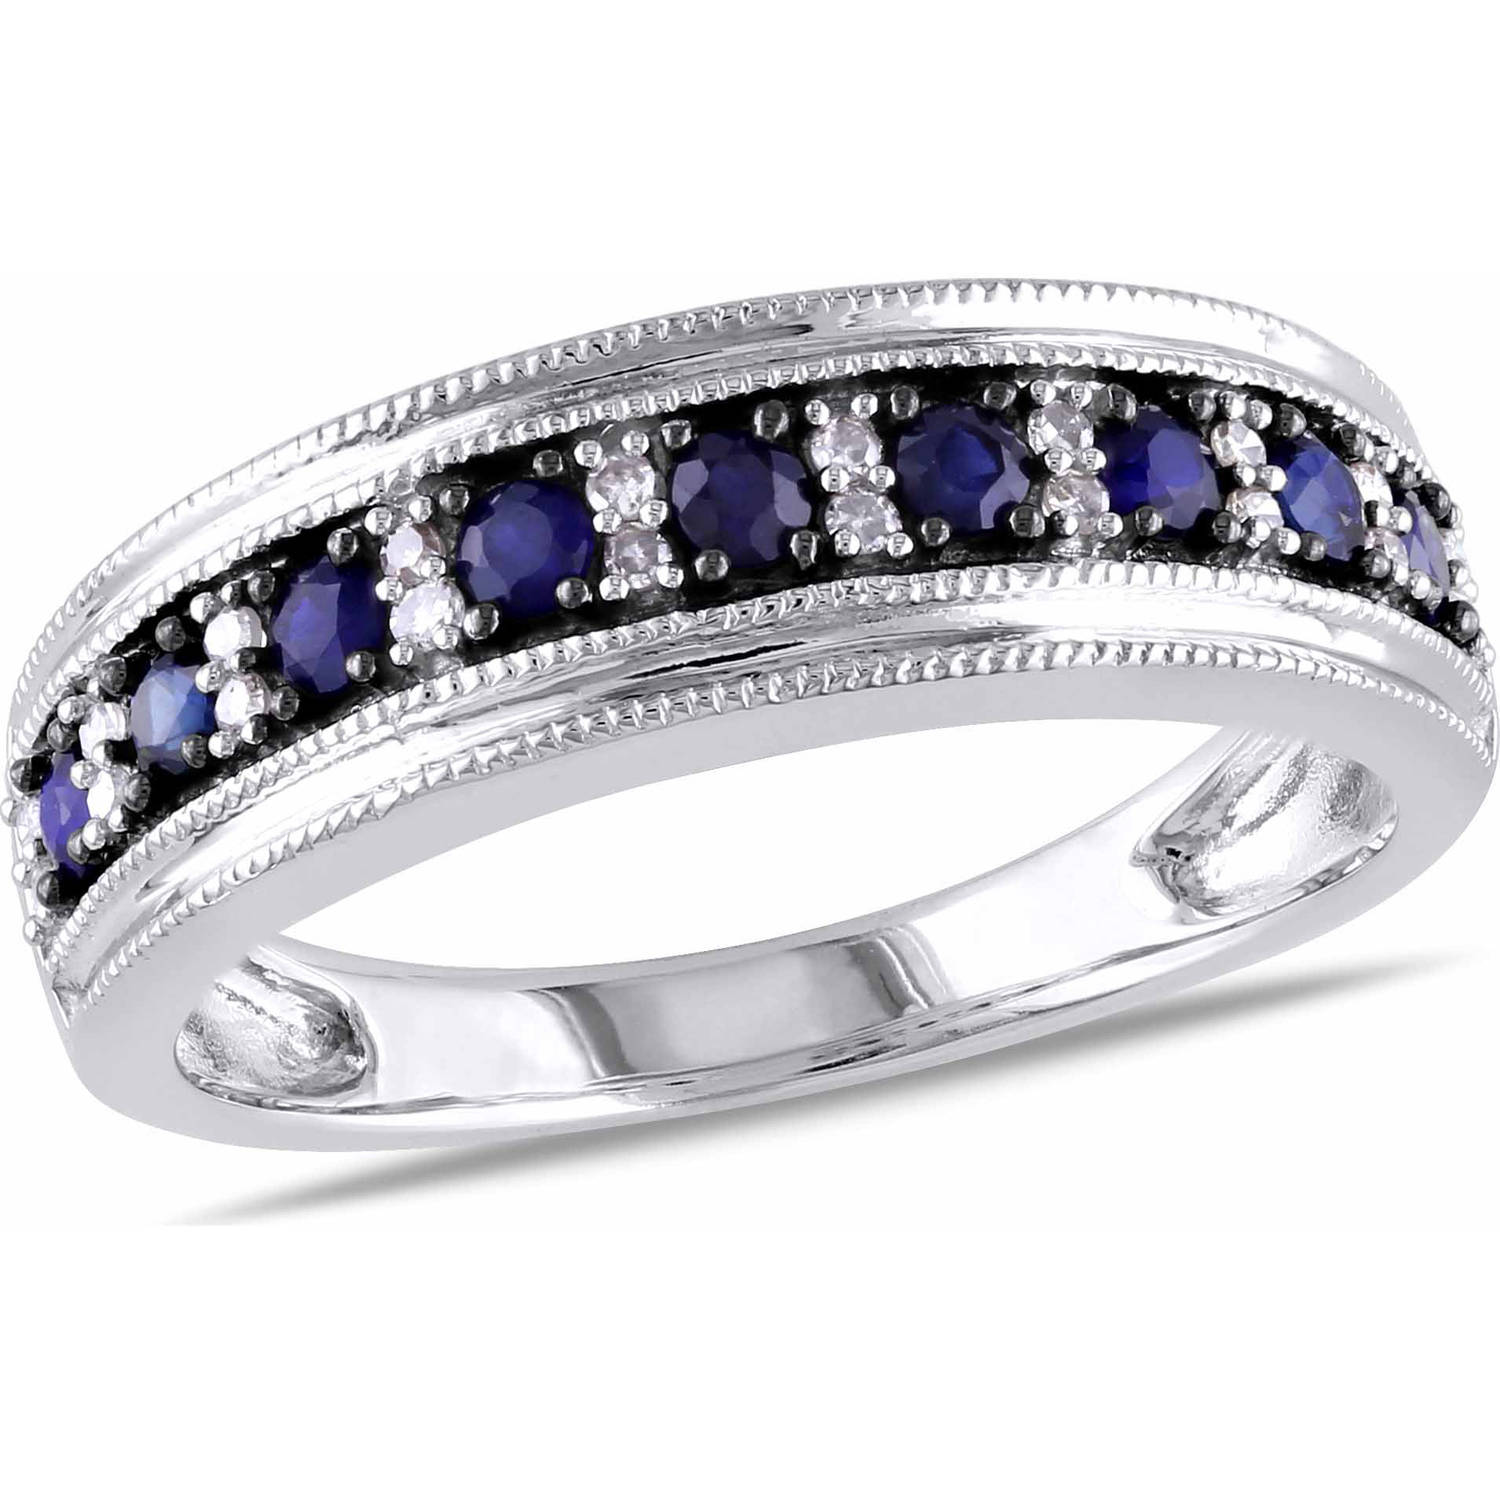 Tangelo 1 2 Carat T.G.W. Blue Sapphire and 1 10 Carat T.W. Diamond 10kt White Gold Semi-Eternity Anniversary Ring by Delmar Manufacturing LLC